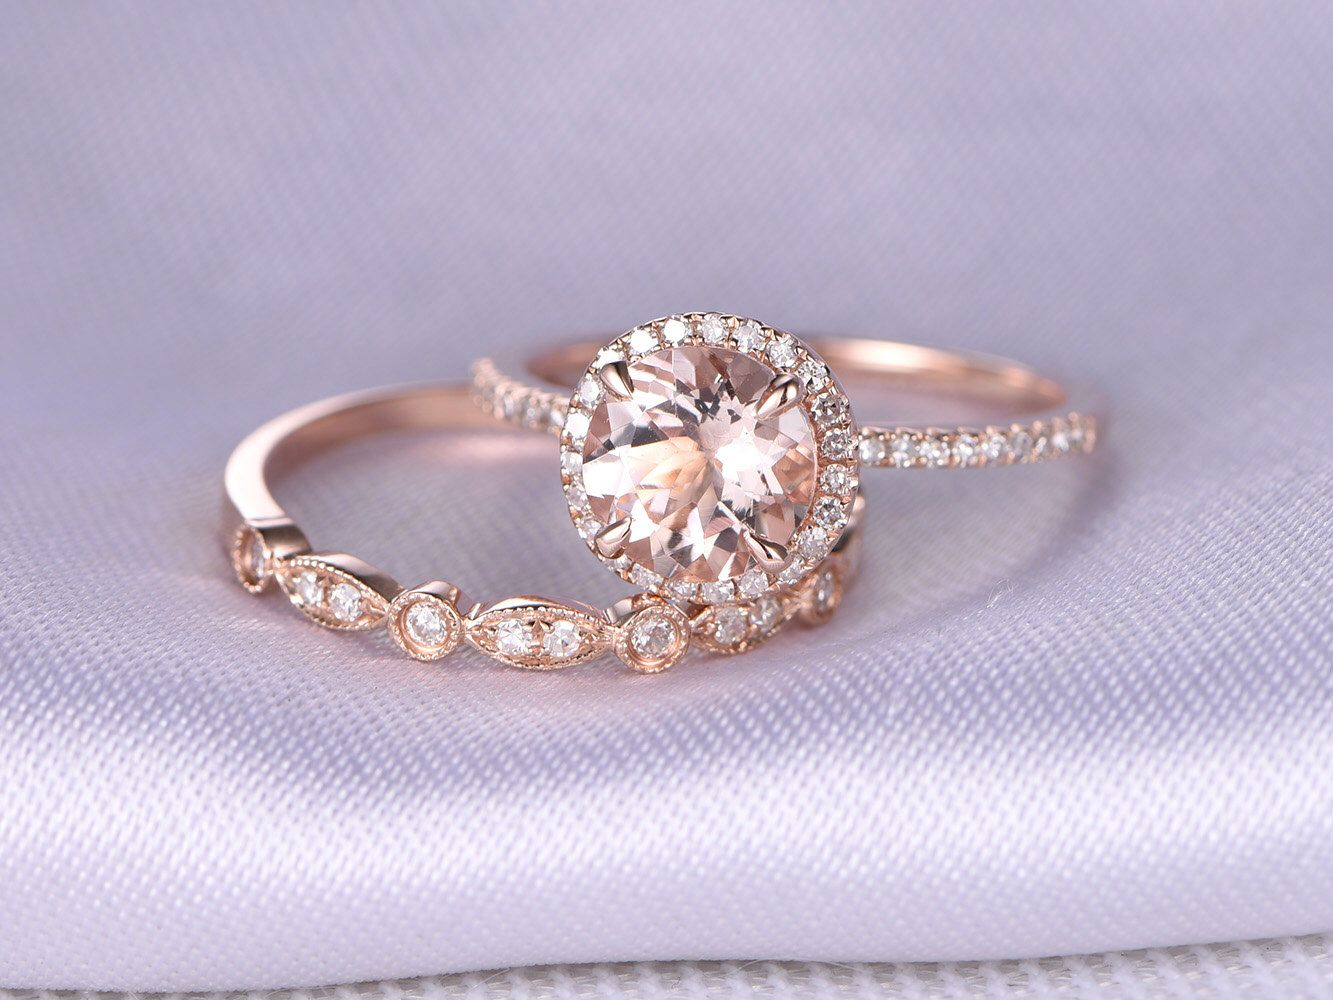 Wedding Ring Set Morganite Engagement Ring 14k Rose Gold Art Deco Diamond Matching Band 7mm Round Stone Personalized For Her Custom Ring by milegem on Etsy https://www.etsy.com/listing/270480733/wedding-ring-set-morganite-engagement